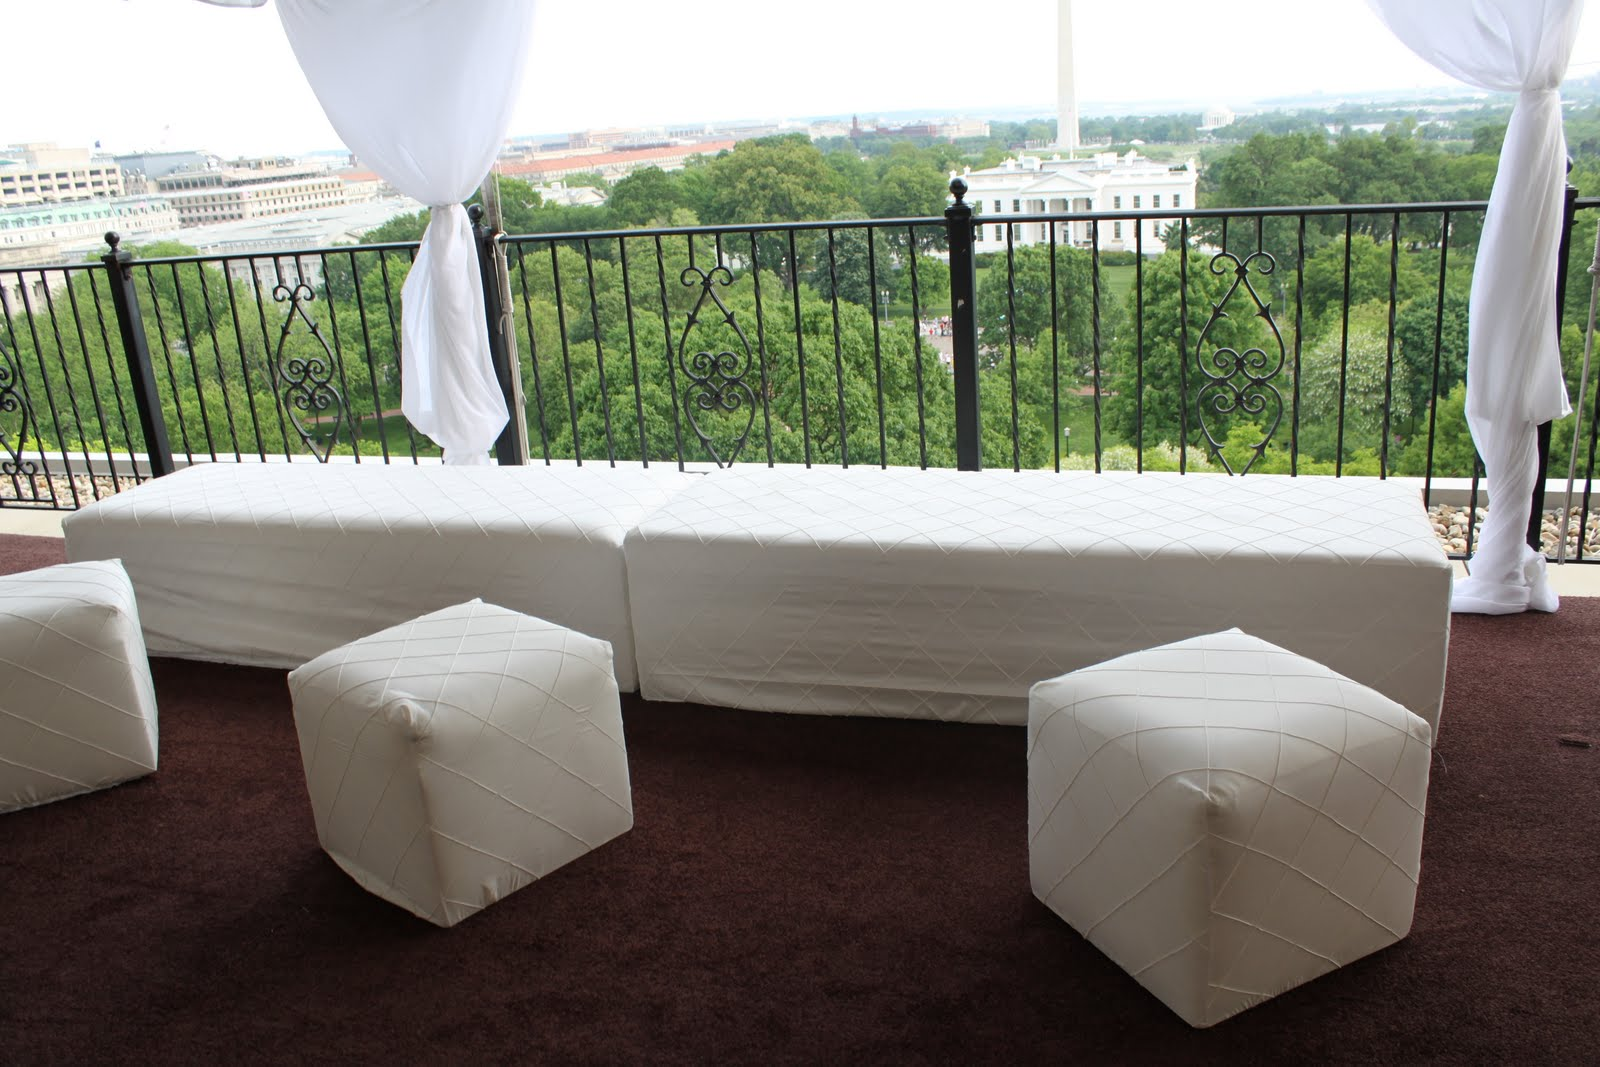 Lounge Furniture For Events | Decoration News